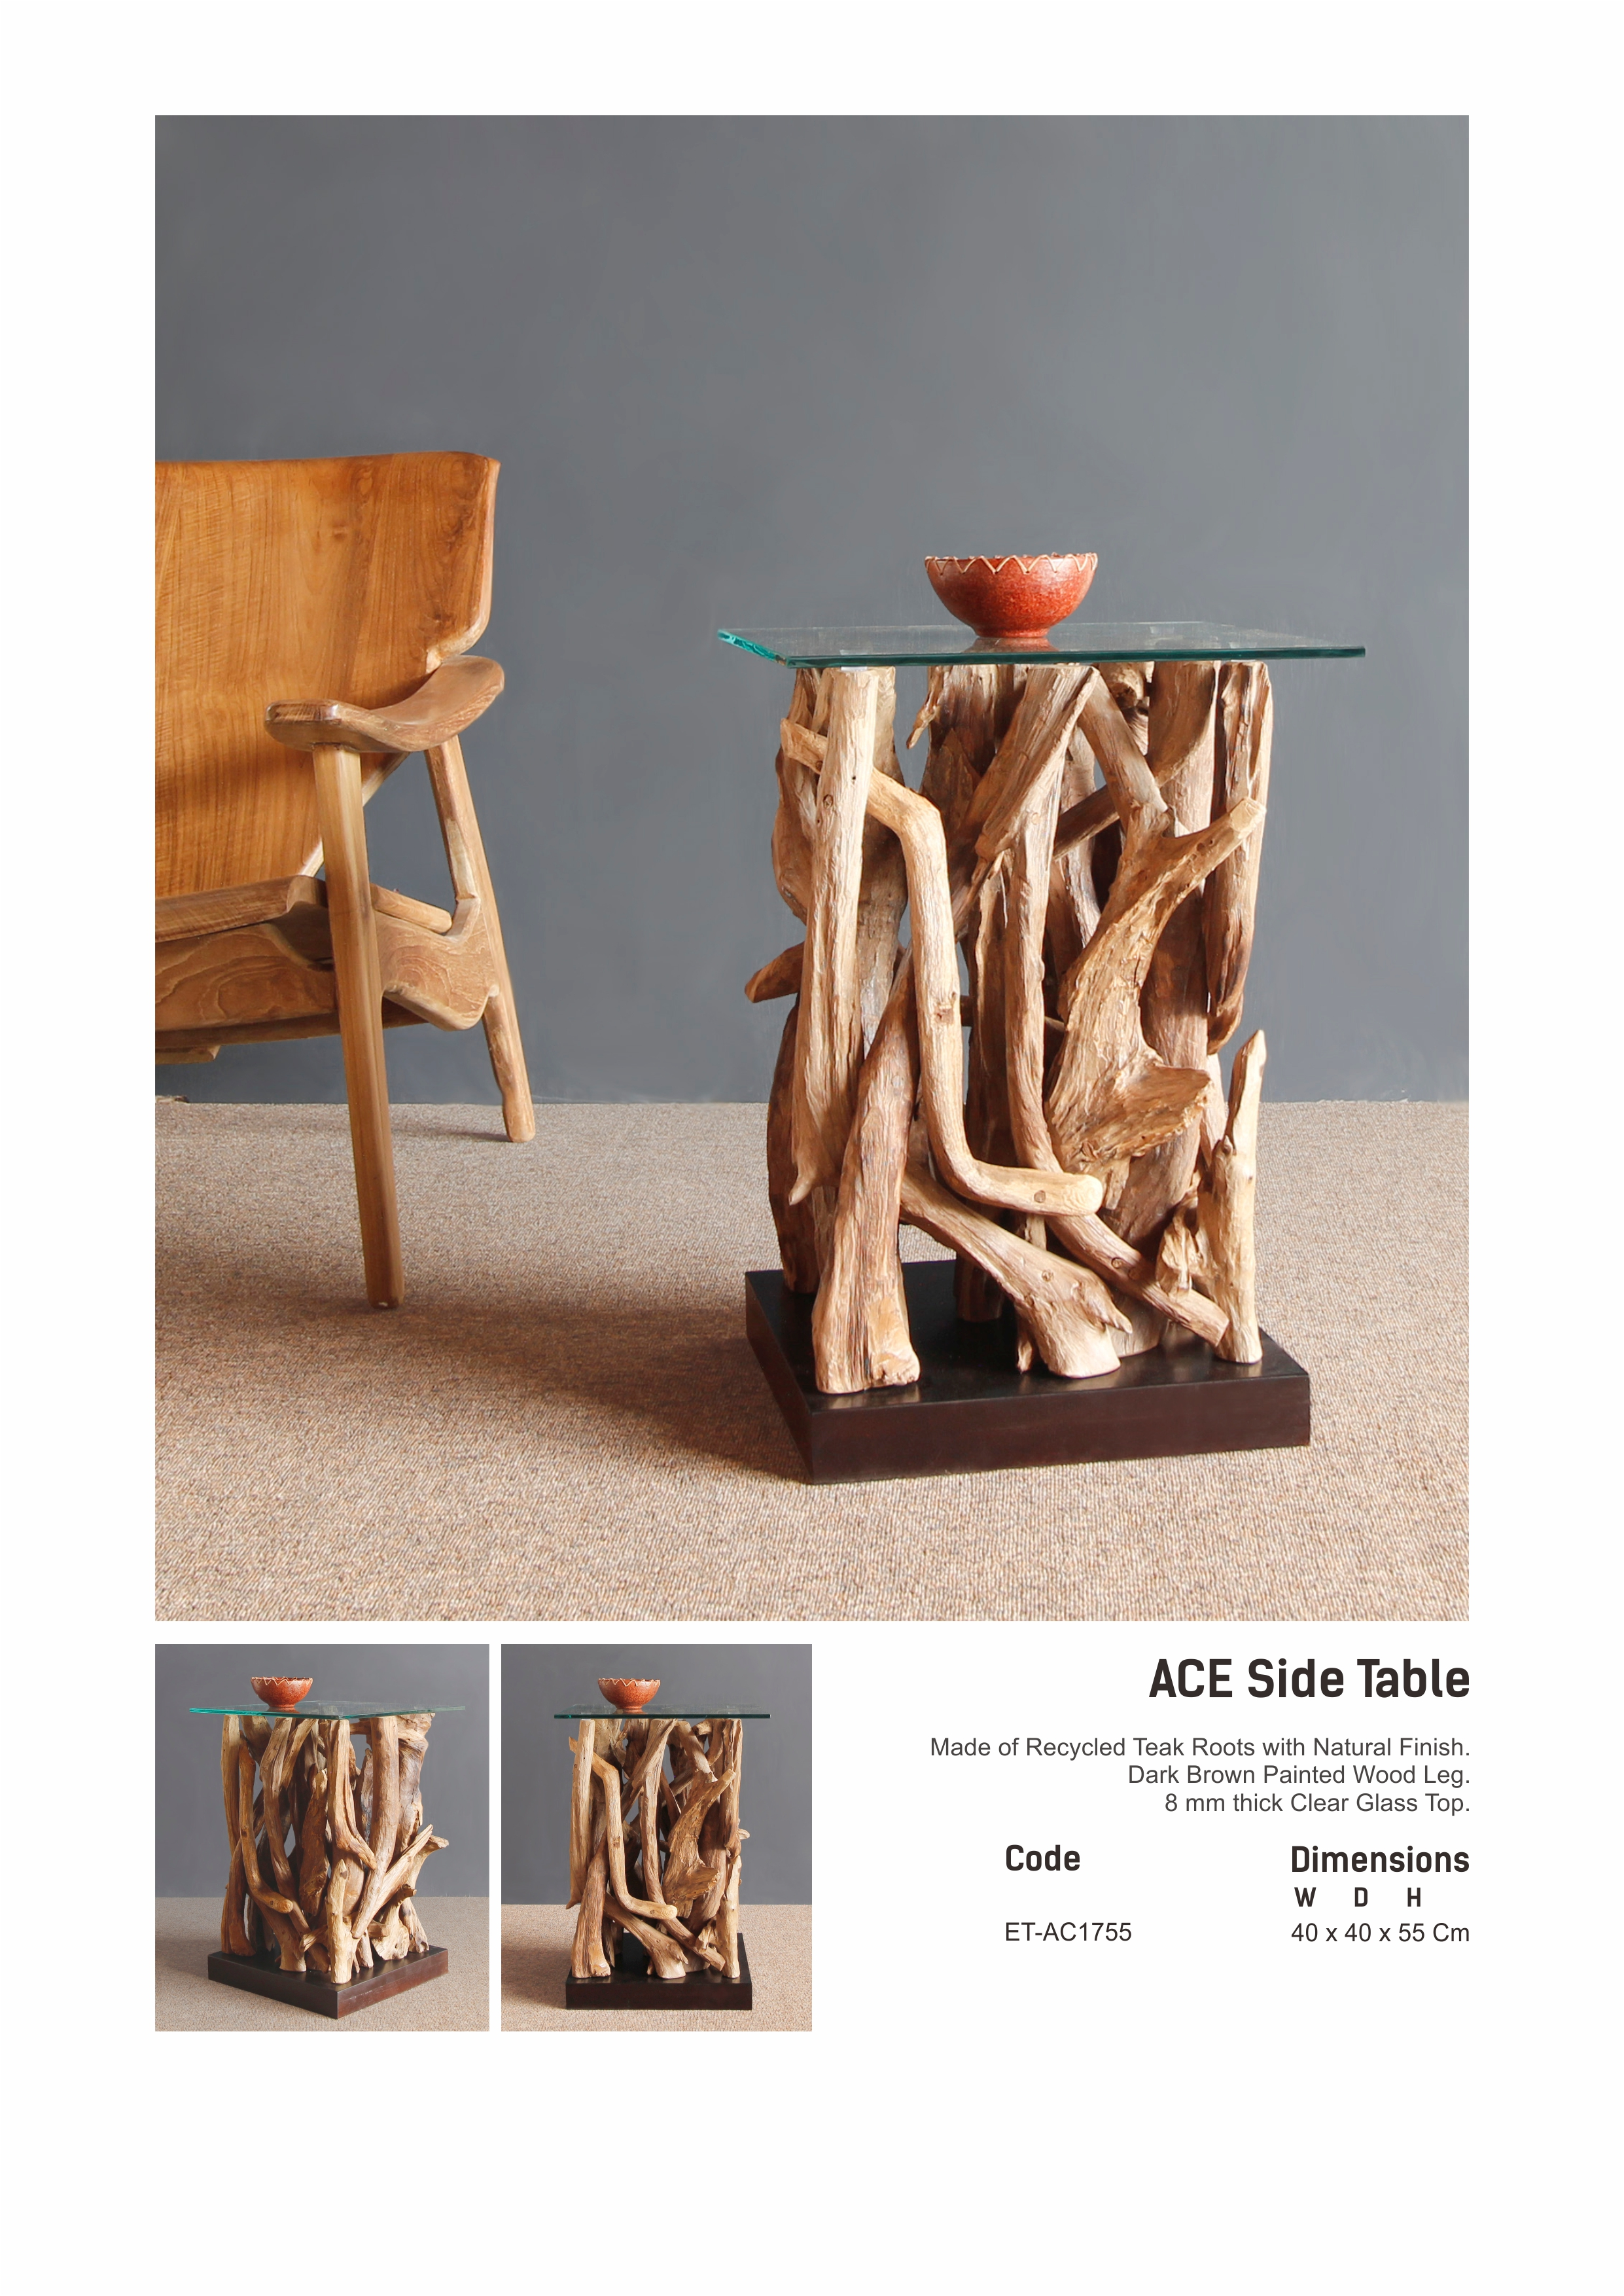 17. ACE Side Table Square